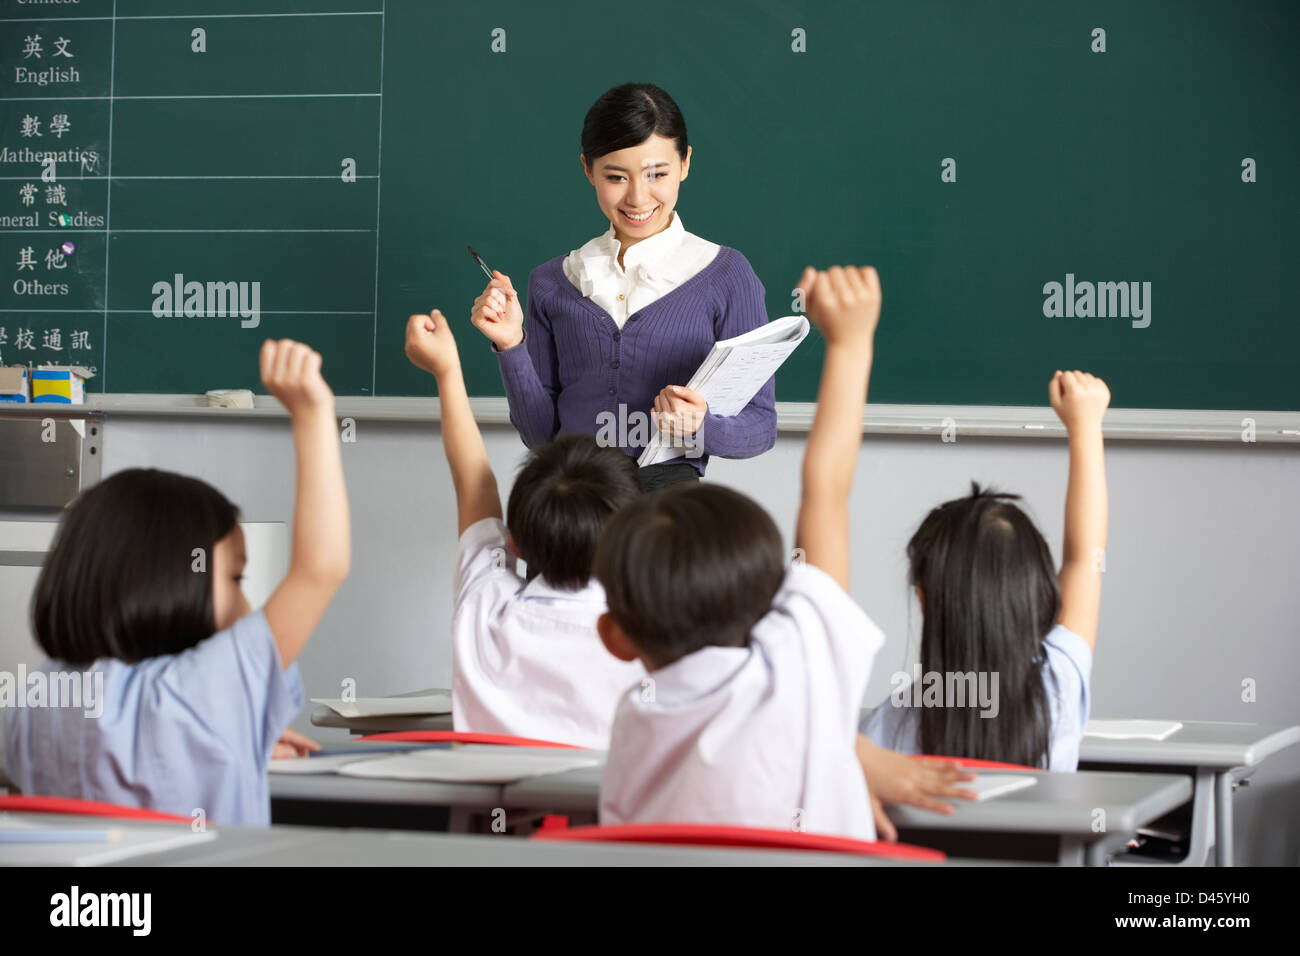 Teacher With Students In Chinese School Classroom - Stock Image